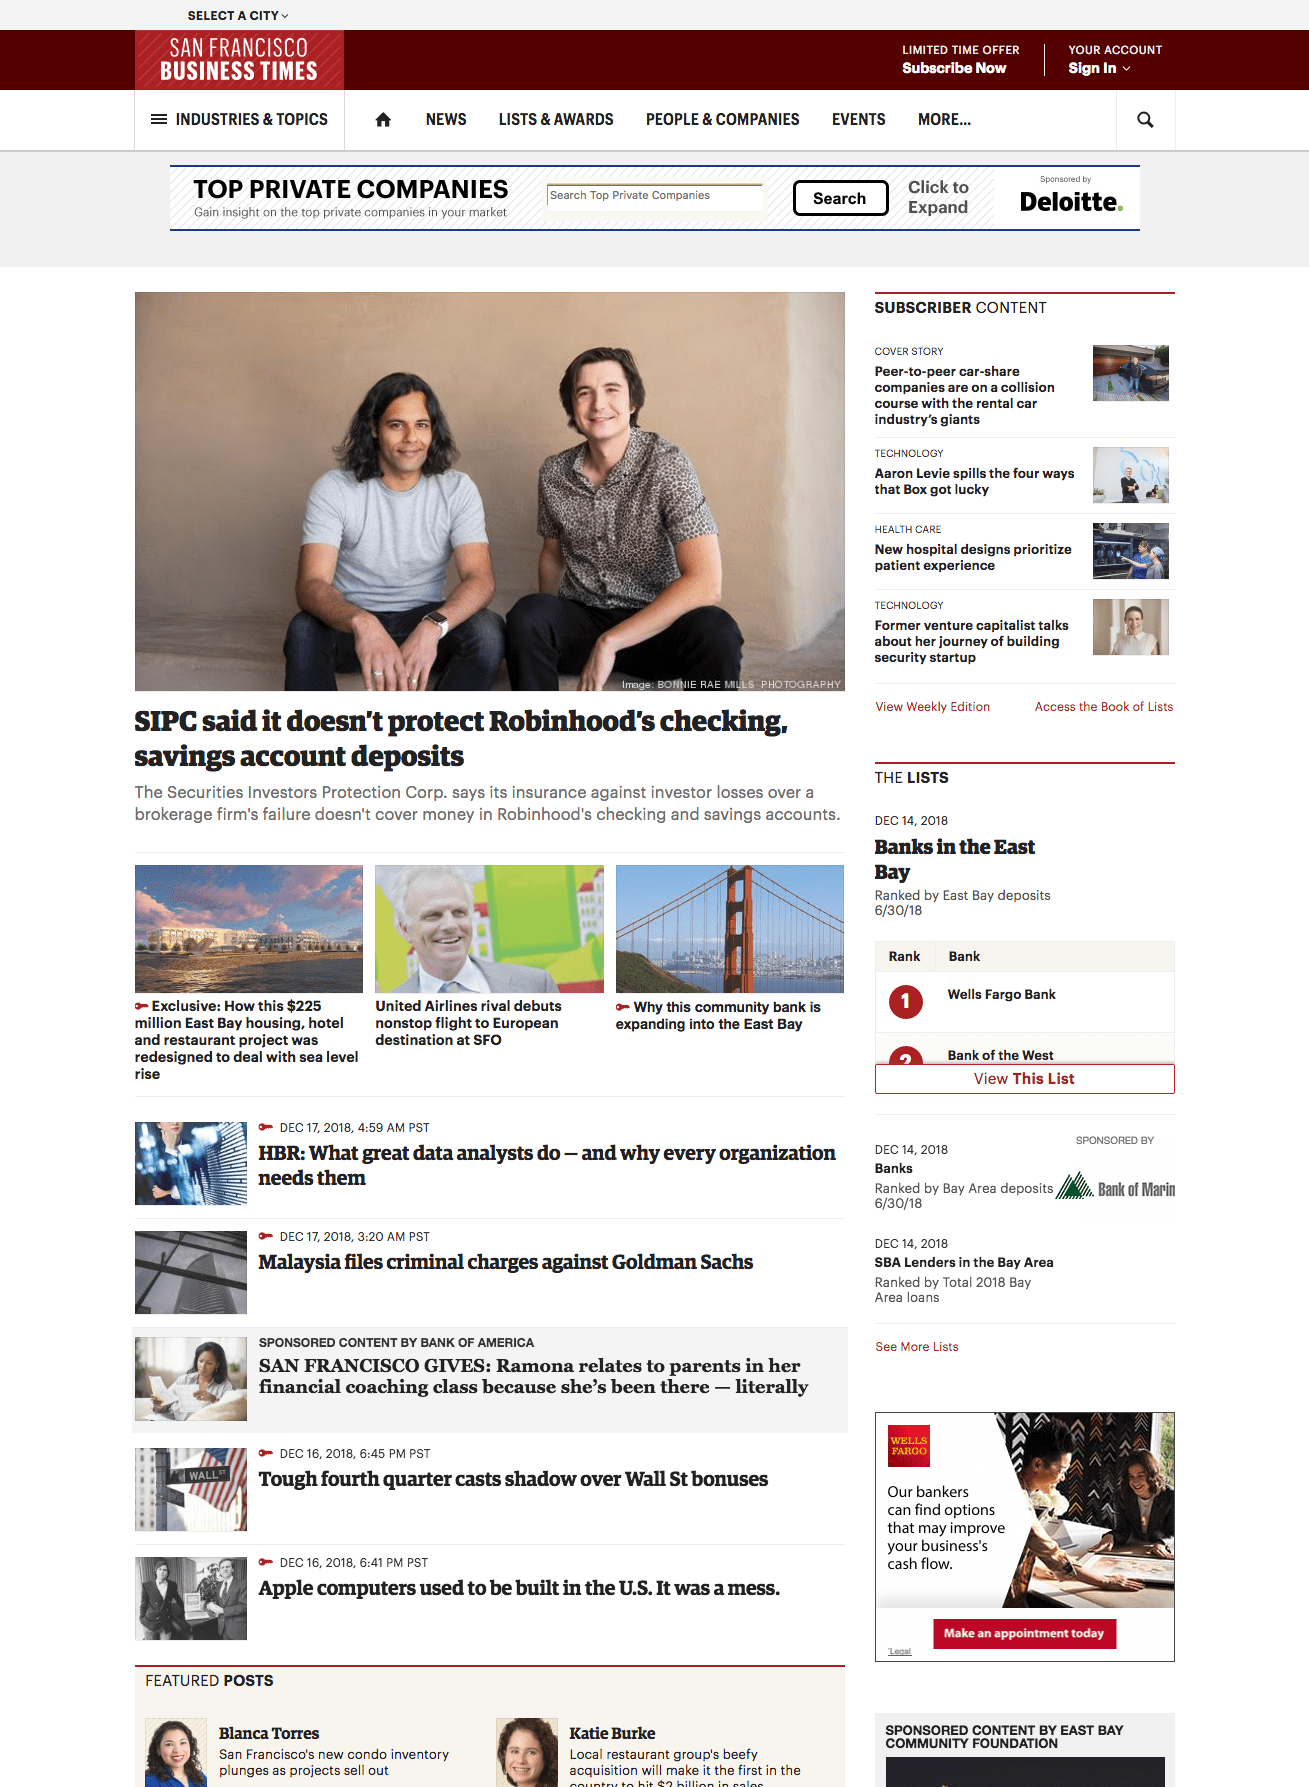 Previous San Francisco Business Times homepage